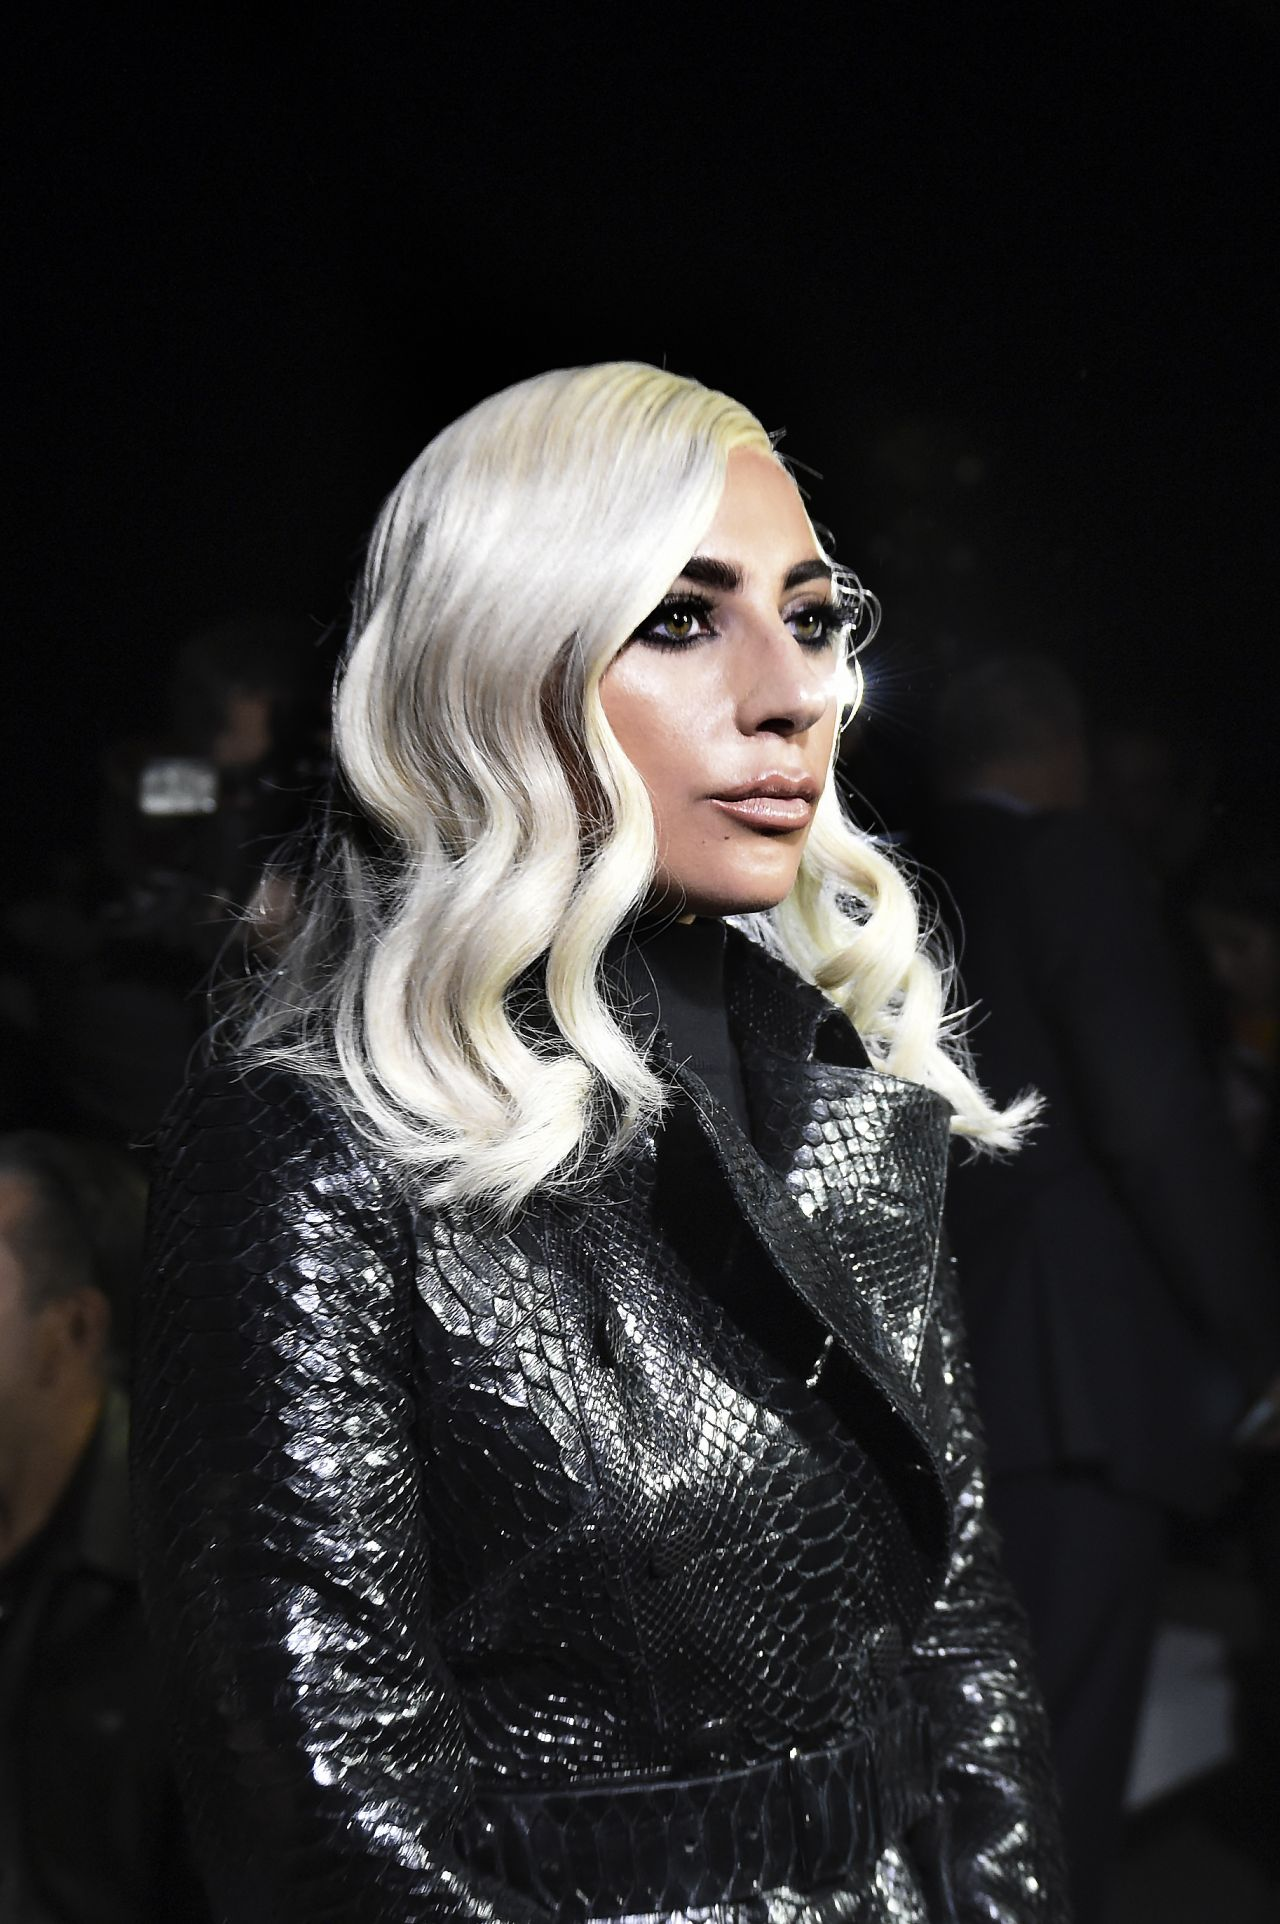 Lady Gaga Latest Photos - CelebMafia Lady Gaga